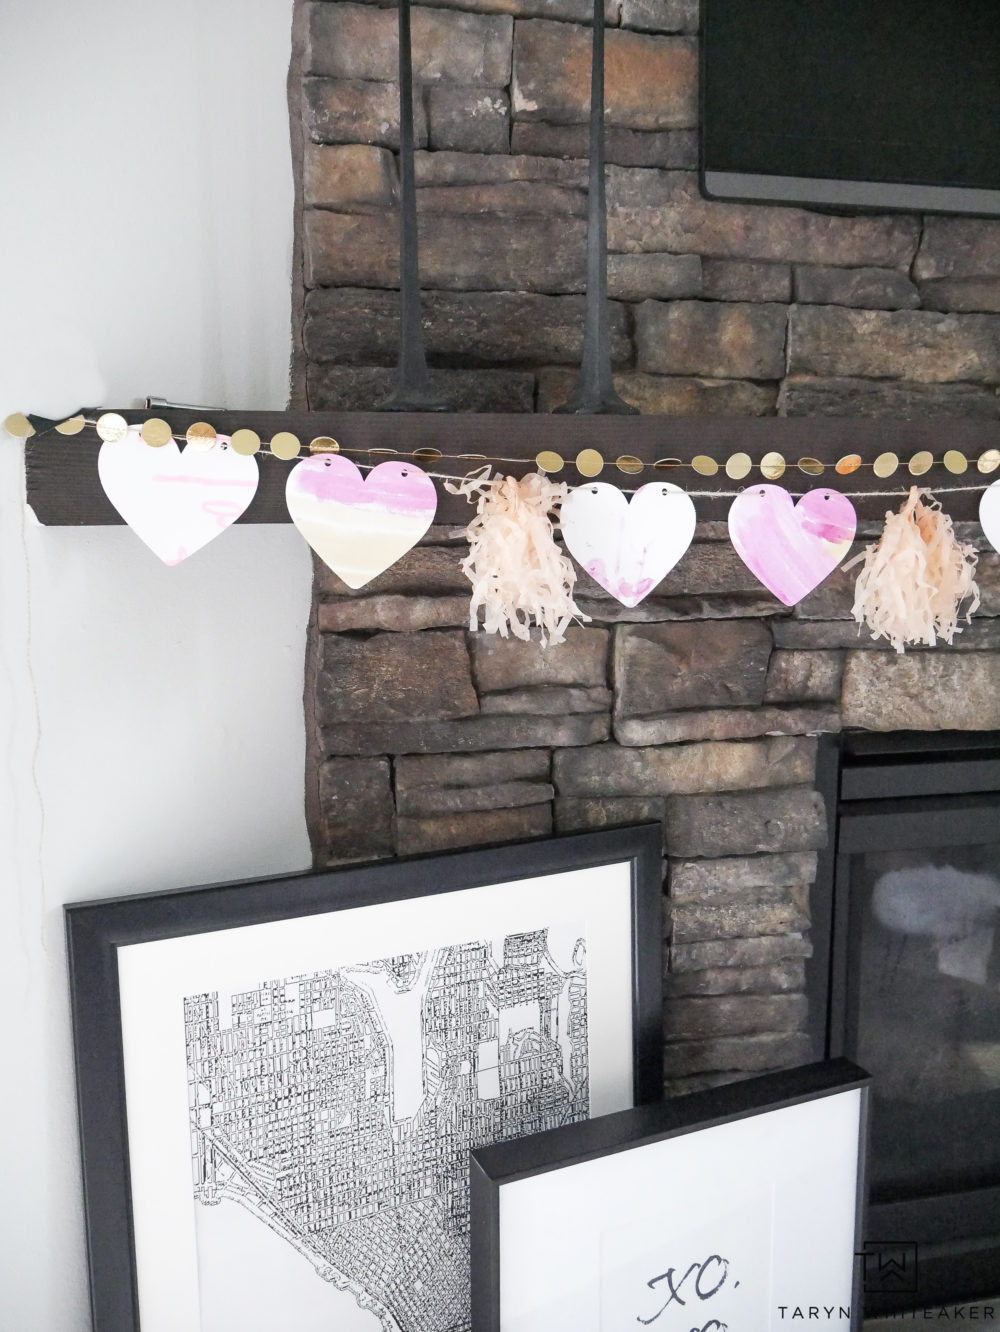 Learn how to create this Simple Valentine's Day Mantel using your kids' artwork! It's always fun to add a little festive cheer to your home especially with handmade art!